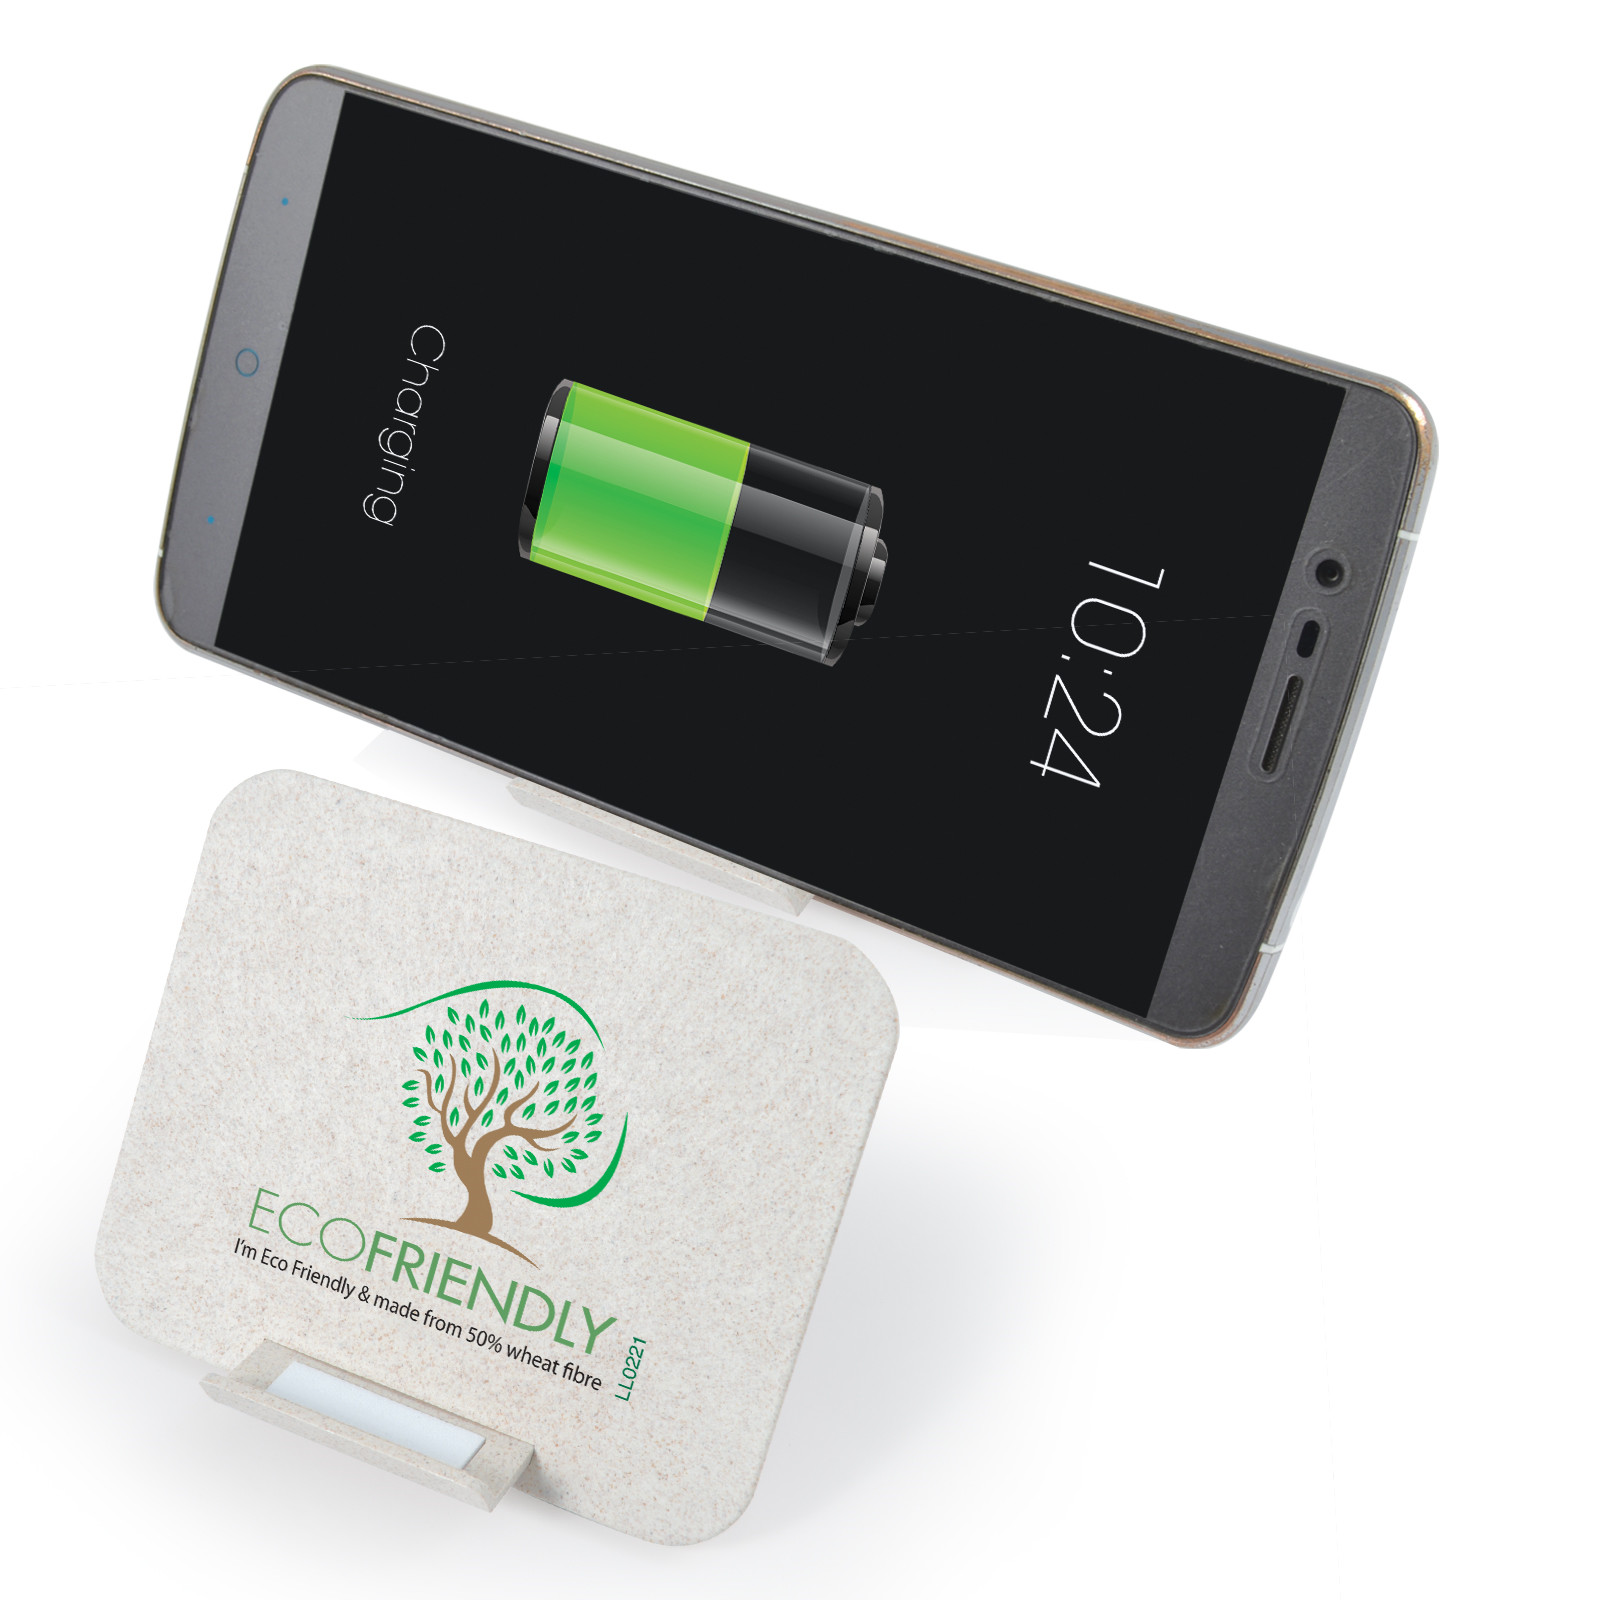 Promotional Product Proton Eco Wireless Charger